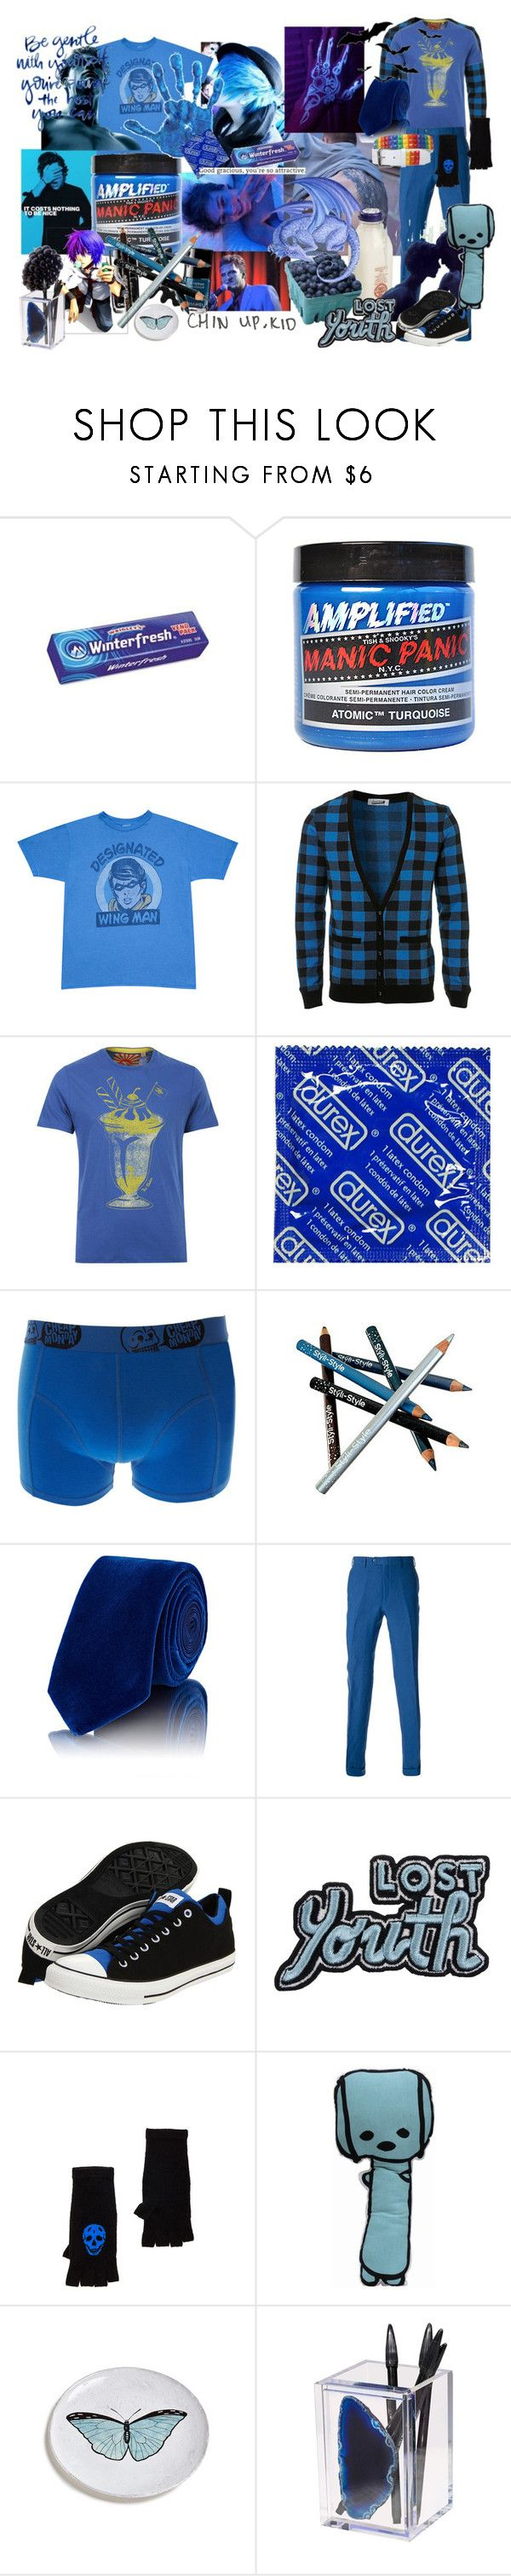 """Blue Boy"" by verysmallgoddess ❤ liked on Polyvore featuring Wrigley's, Manic Panic NYC, Junk Food Clothing, Topman, Ted Baker, Cheap Monday, Chanel, Styli-Style, Penrose London and Brioni"